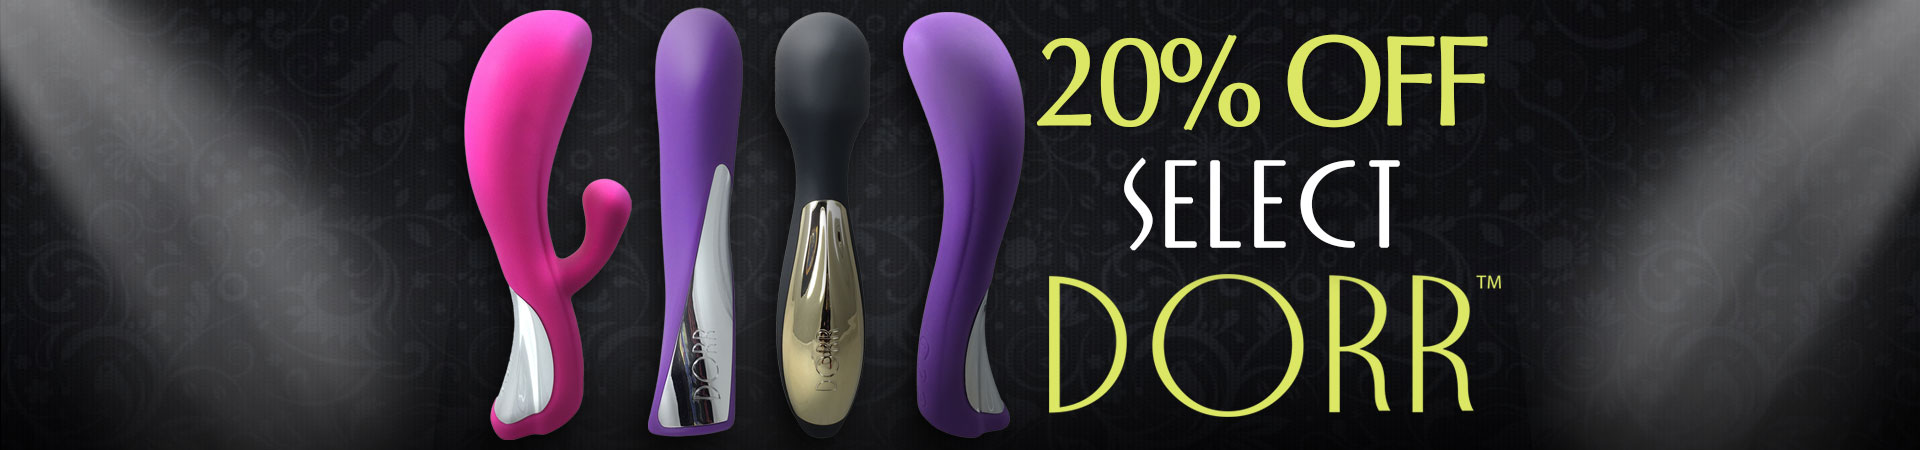 20% Off Select DORR - While Supplies Last